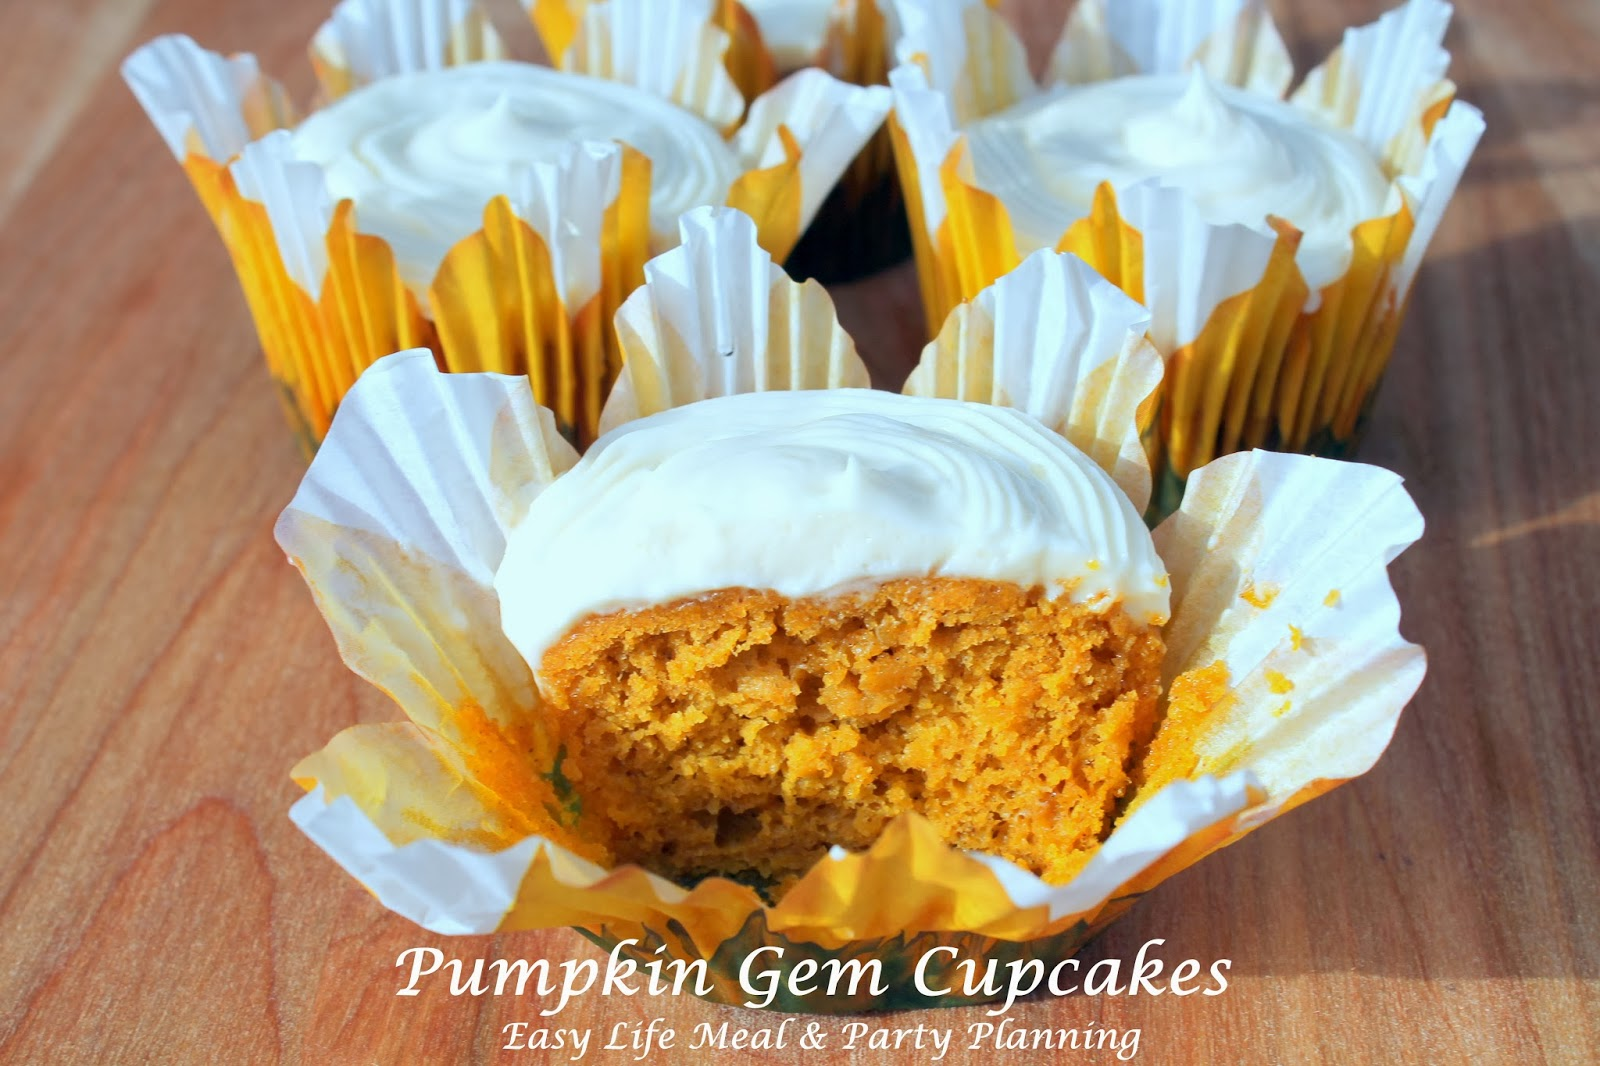 Pumpkin Gem Cupcakes: Easy Life Meal & Party Planning